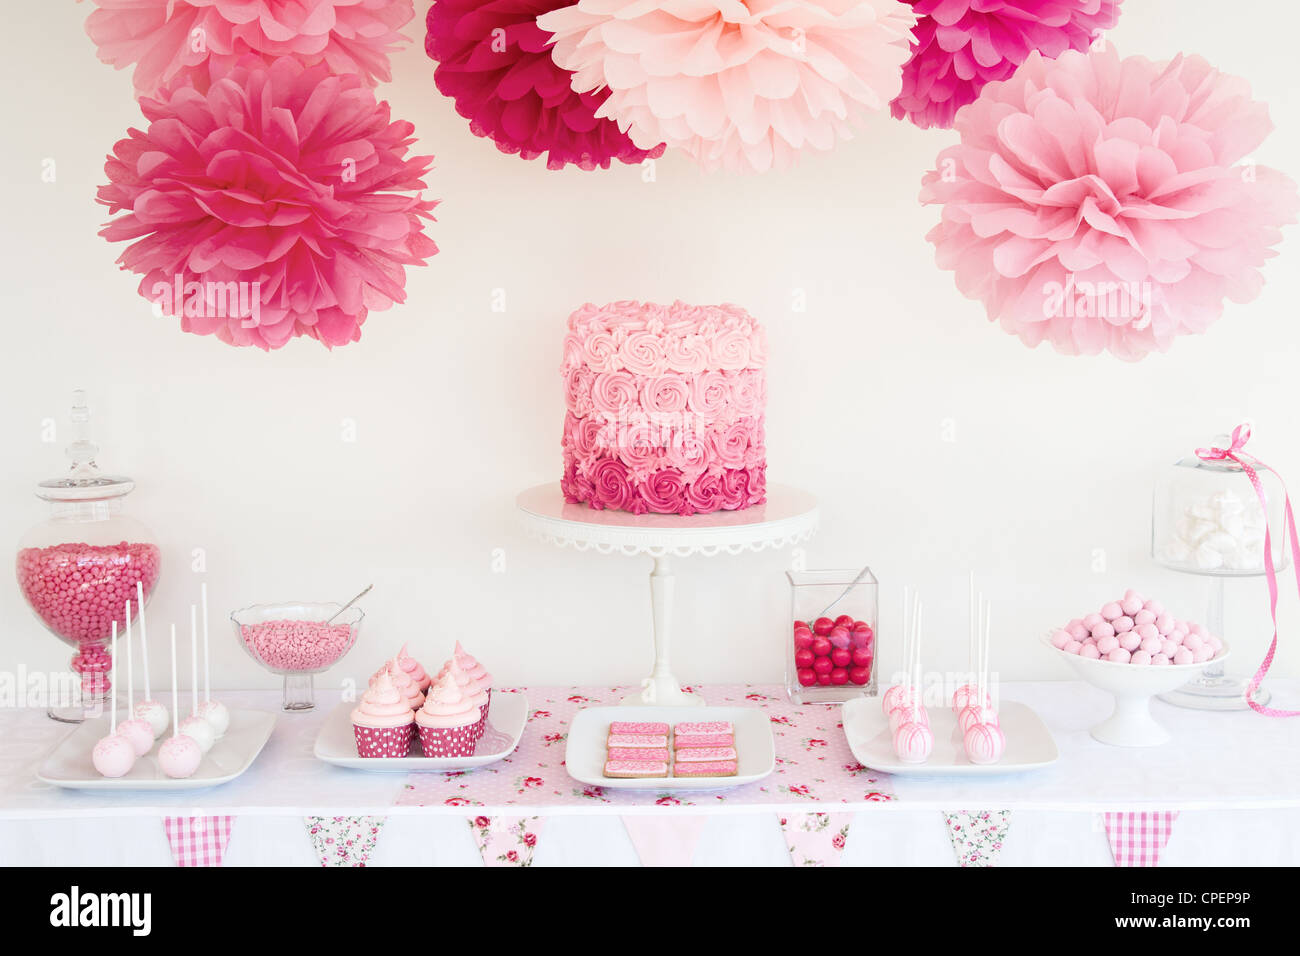 Table de desserts Photo Stock